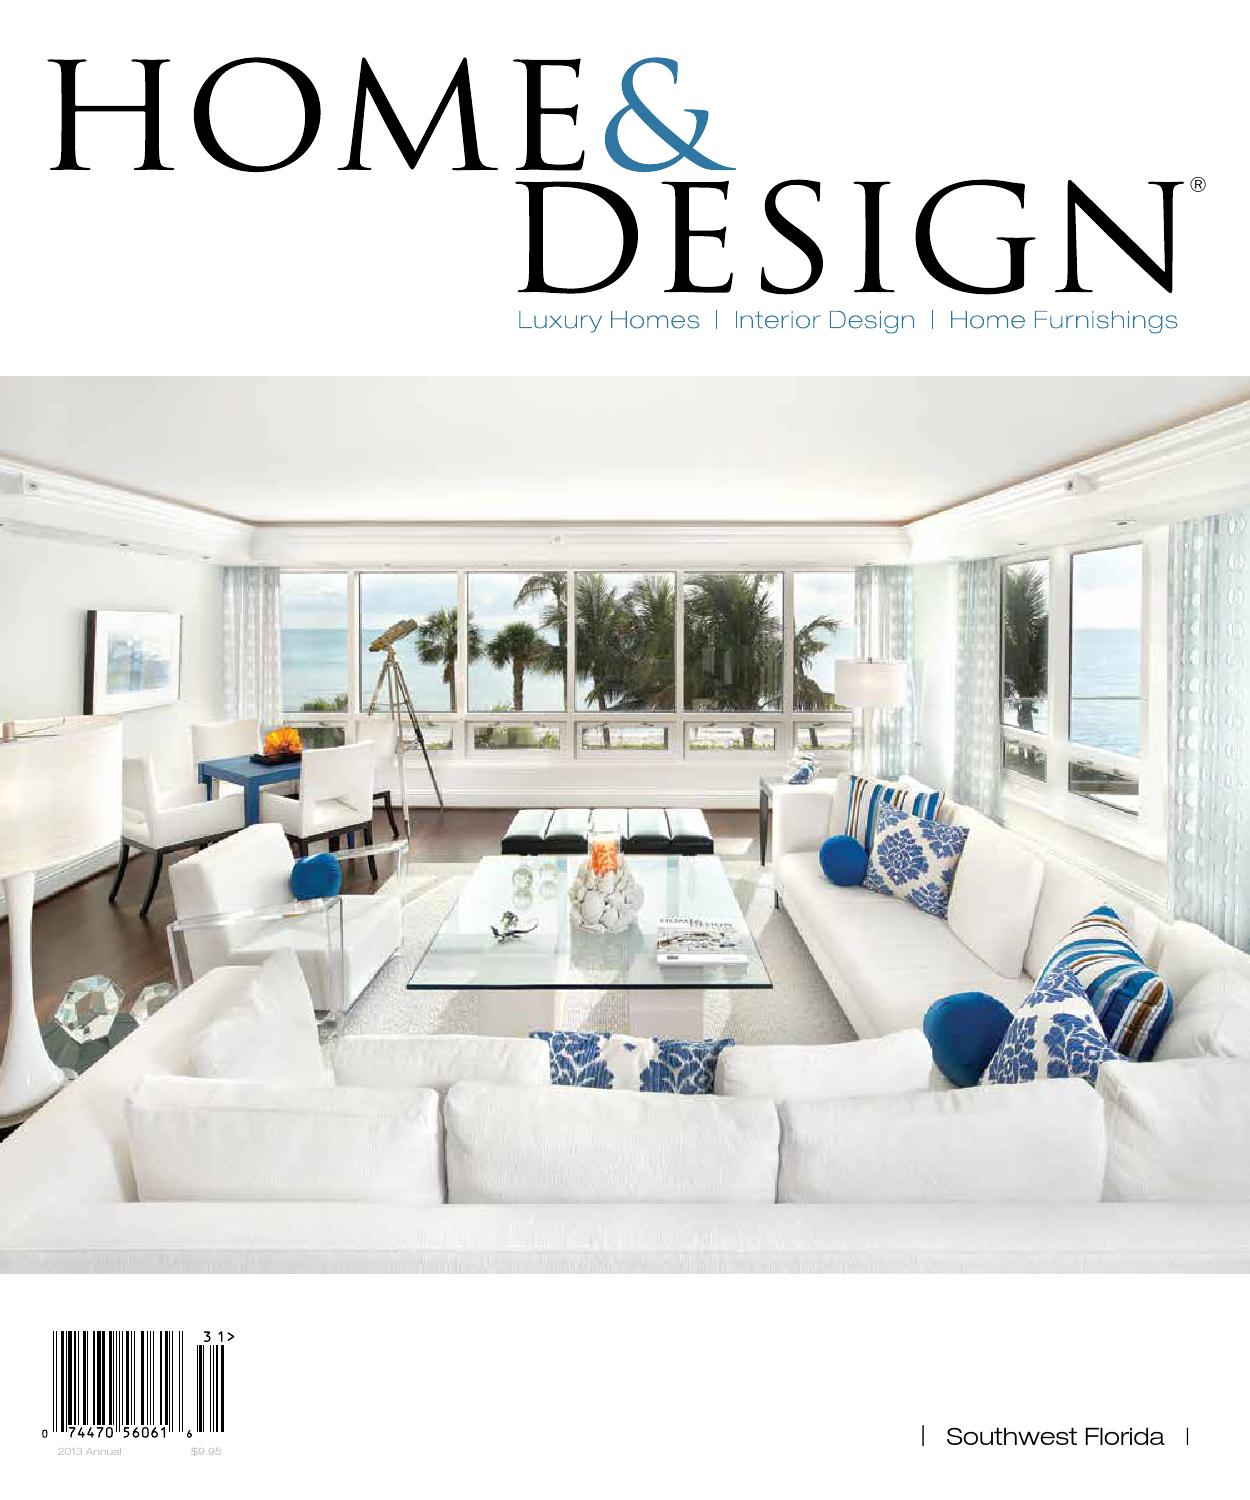 Home design magazine annual resource guide 2013 by for 2 by 4 design